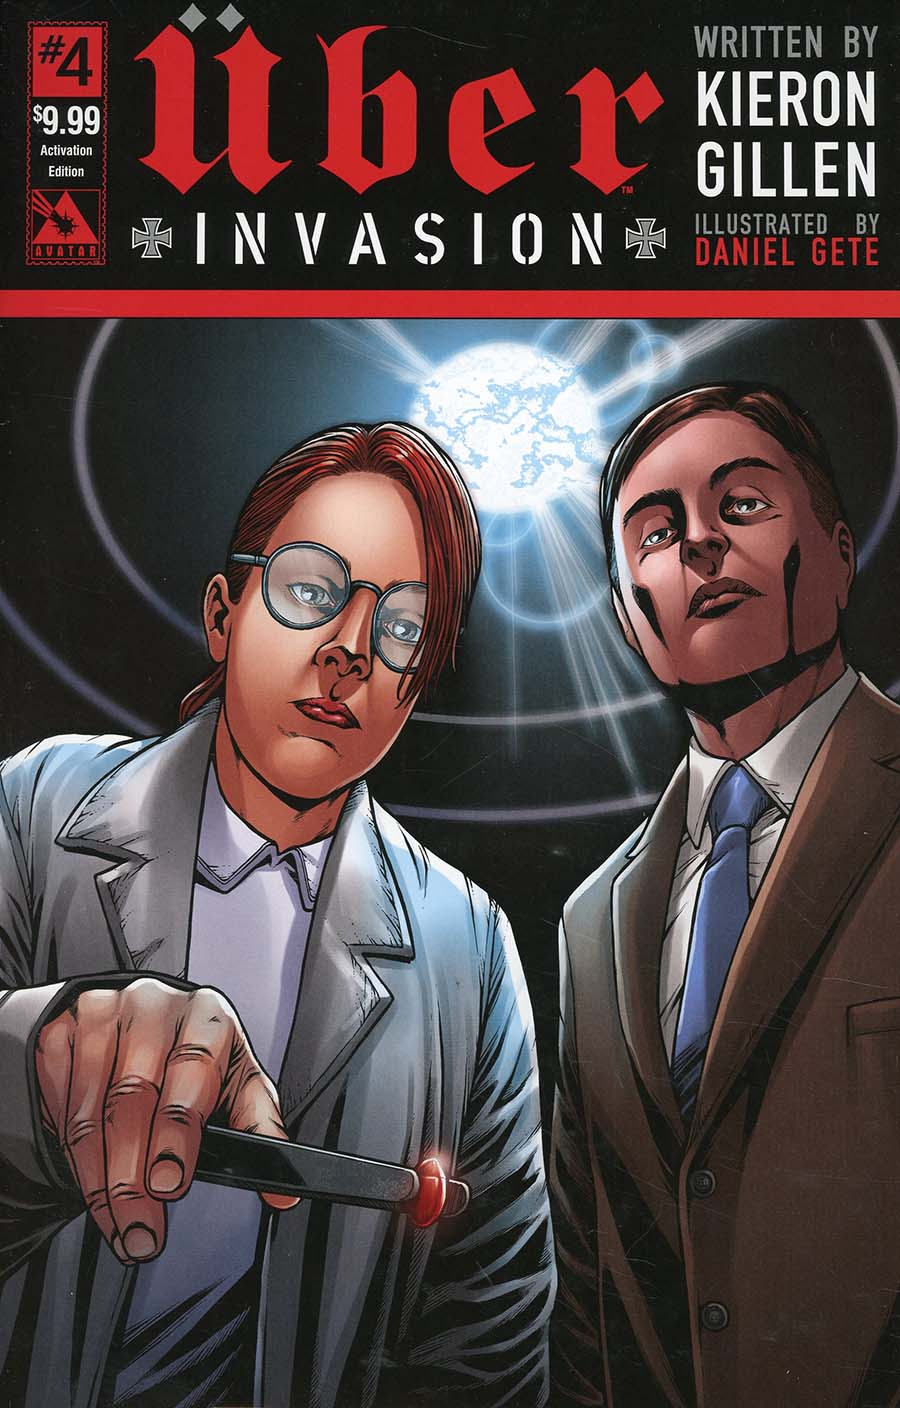 Uber Invasion #4 Cover G Activation Edition Cover